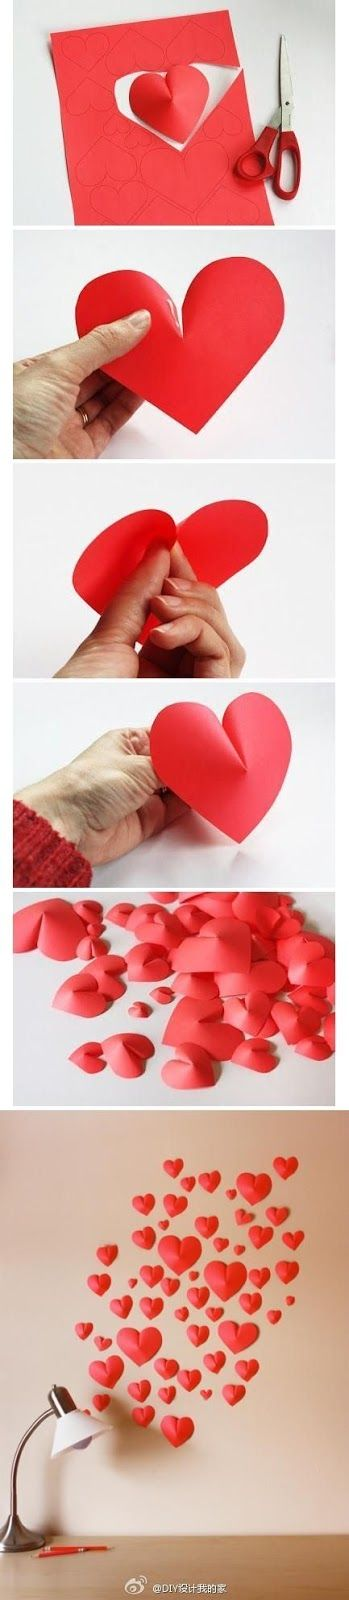 Make A 3D Paper Heart For Decoration